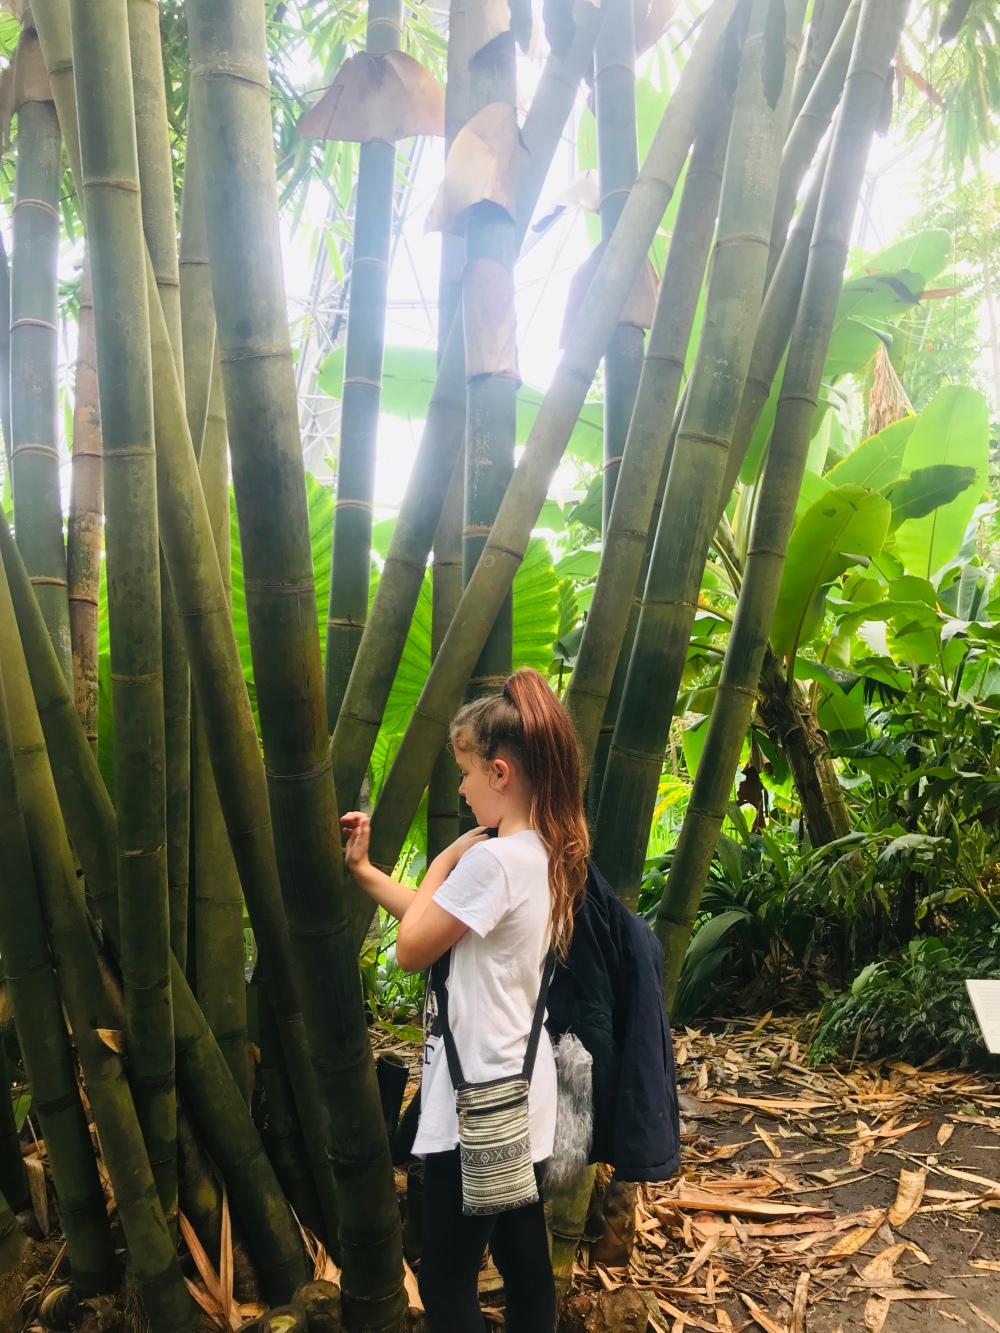 The Eden project - nay nays adventure